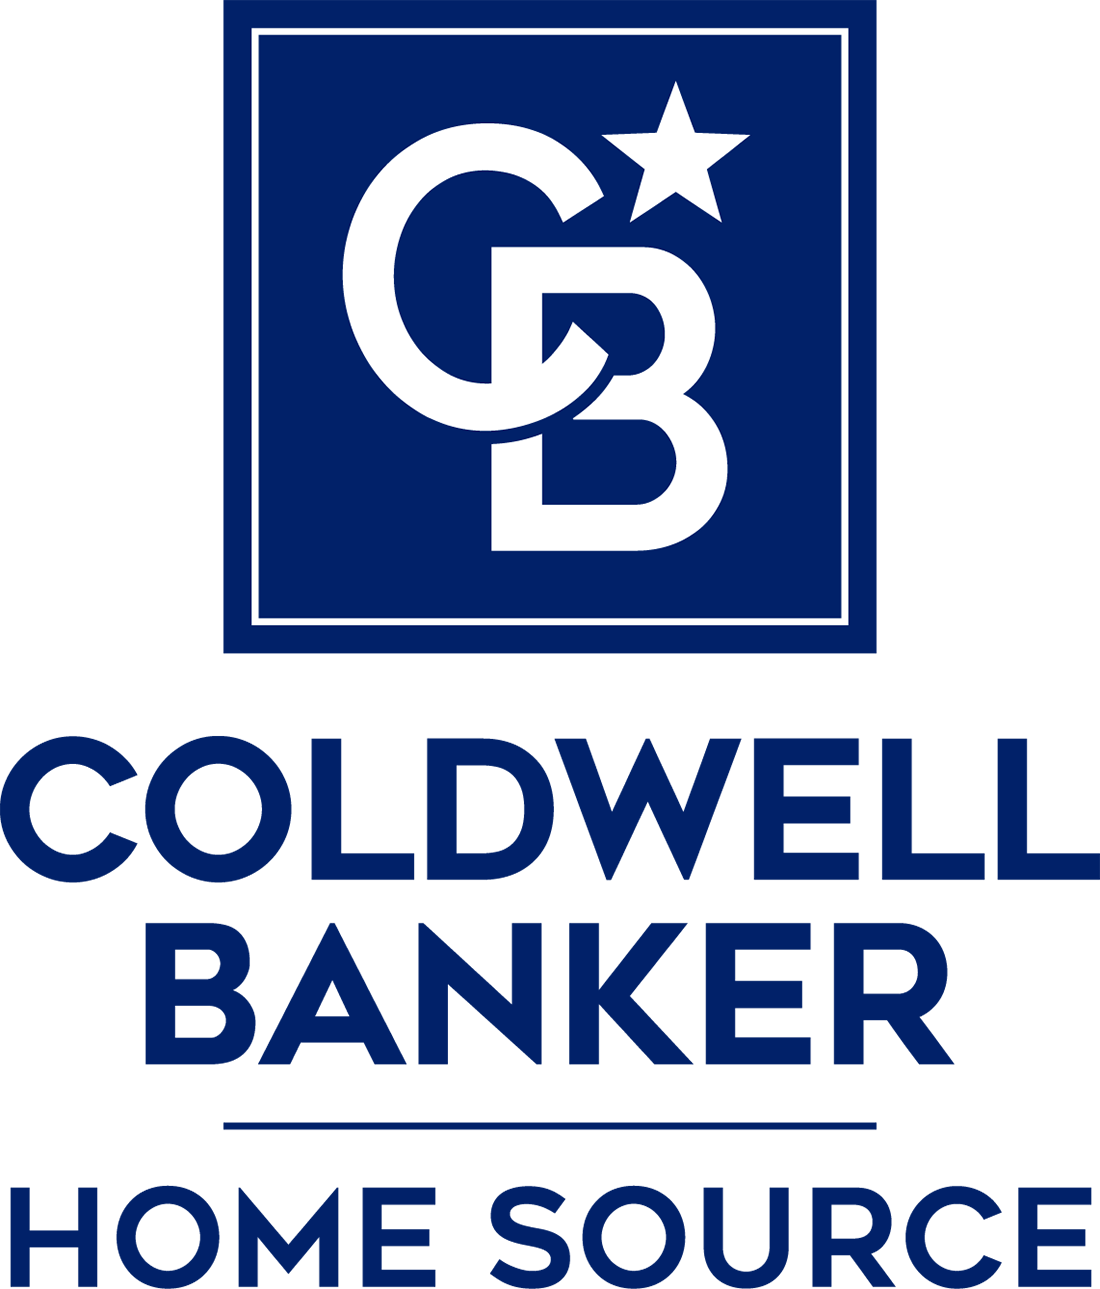 Hector Gonzalez - Coldwell Banker Home Source Logo